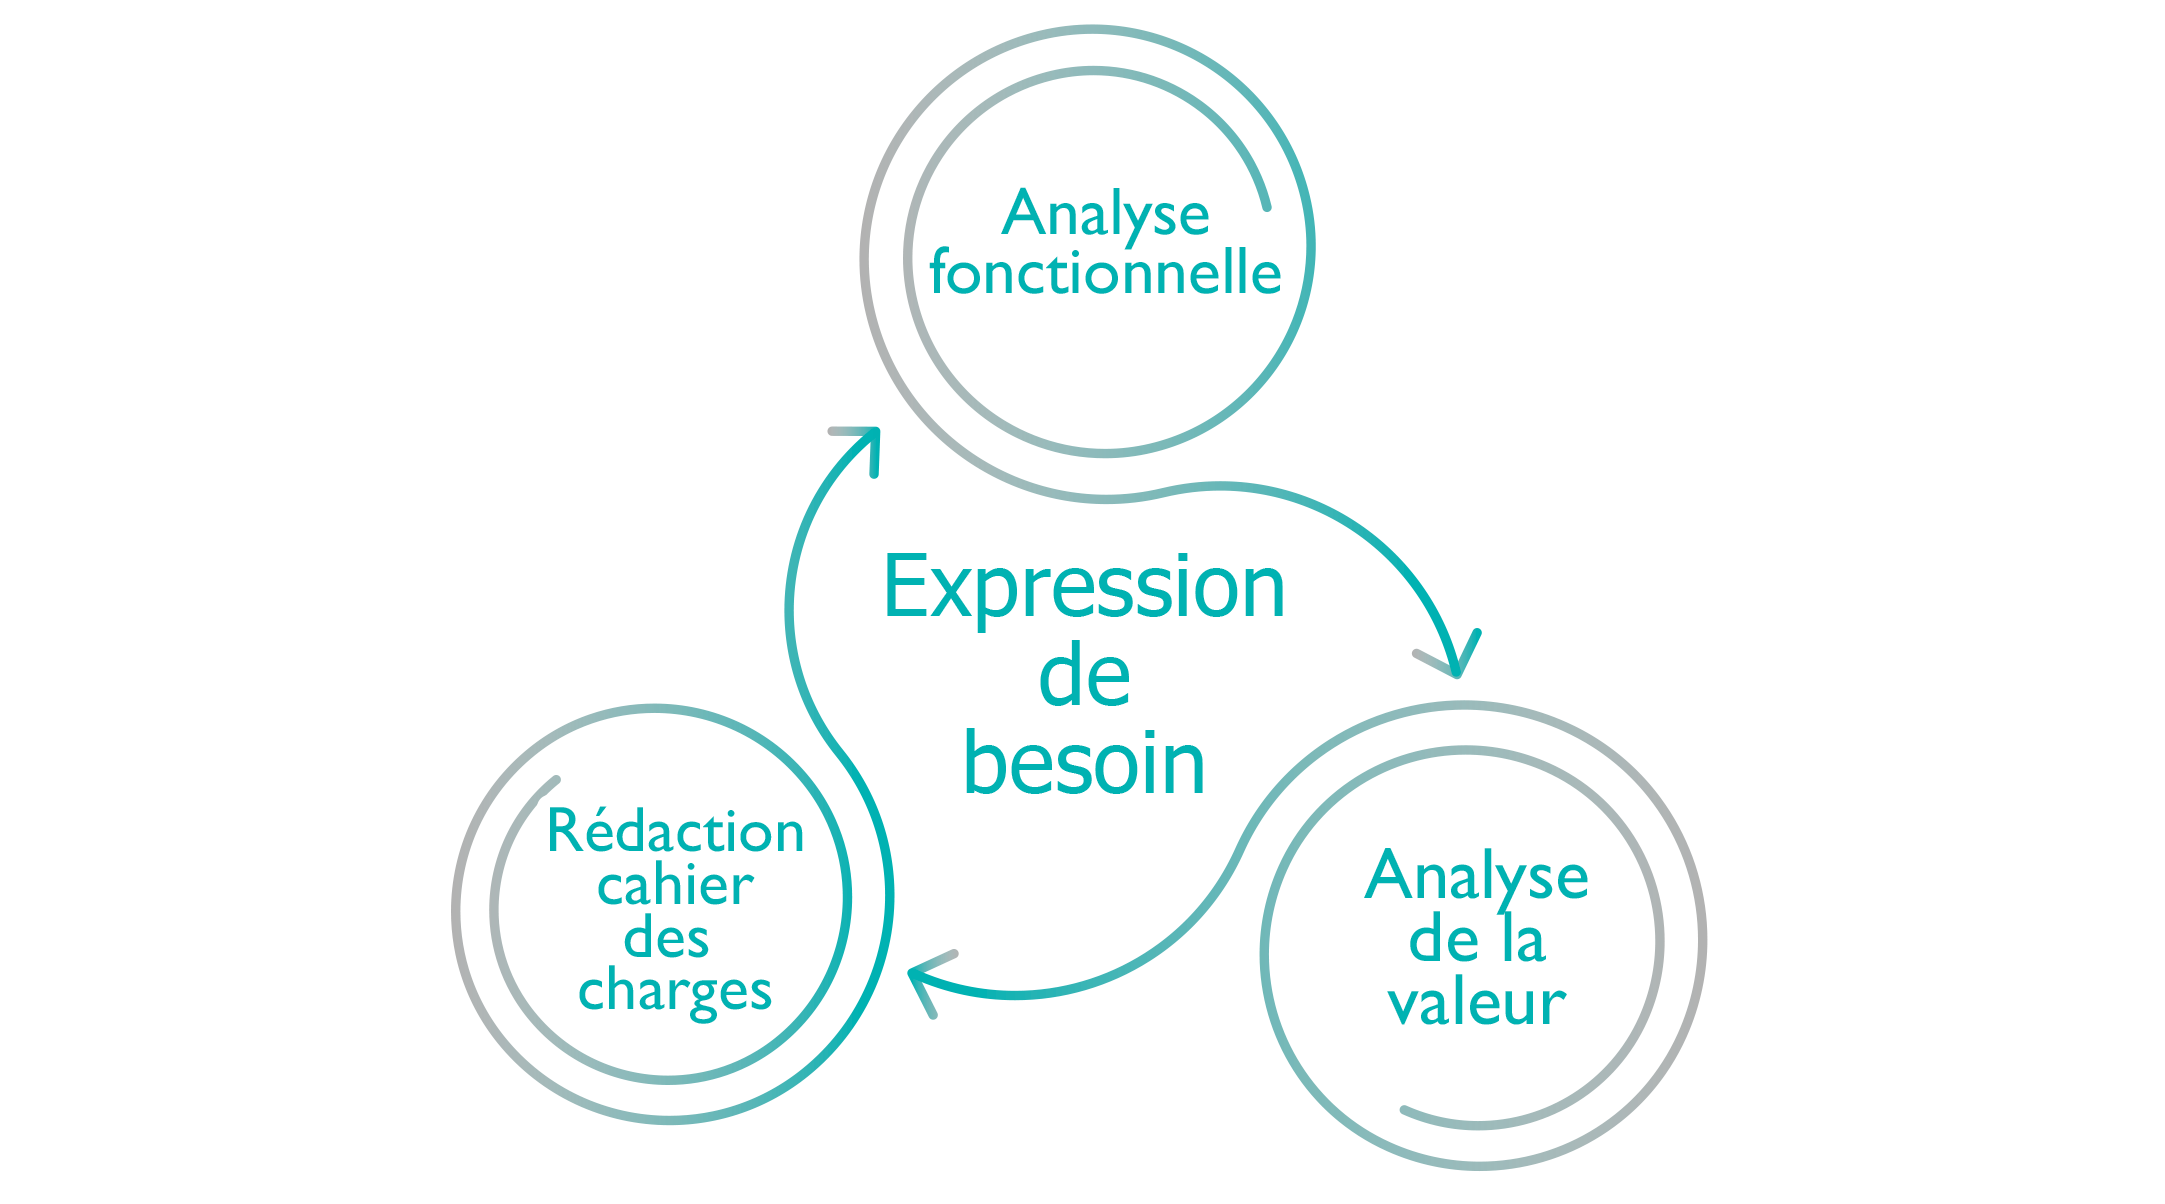 Expression de besoin